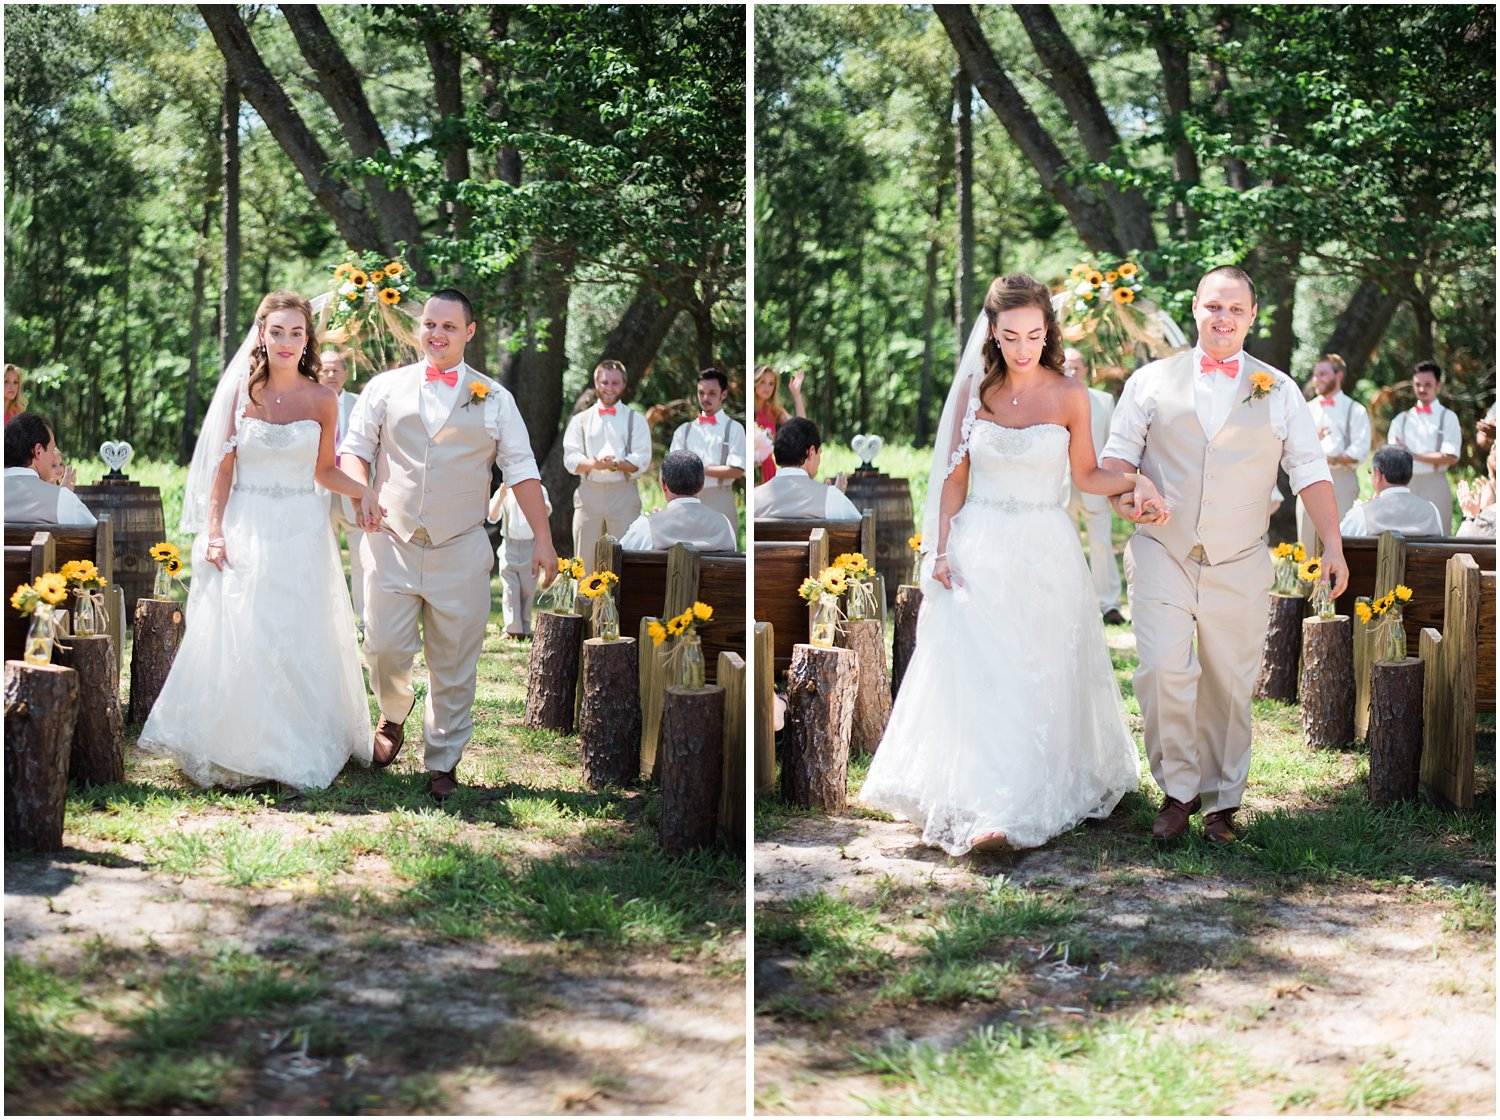 Kyle and Haley Wedding day at Loblolly Rise Plantation, Thomasville Georgia_0034.jpg